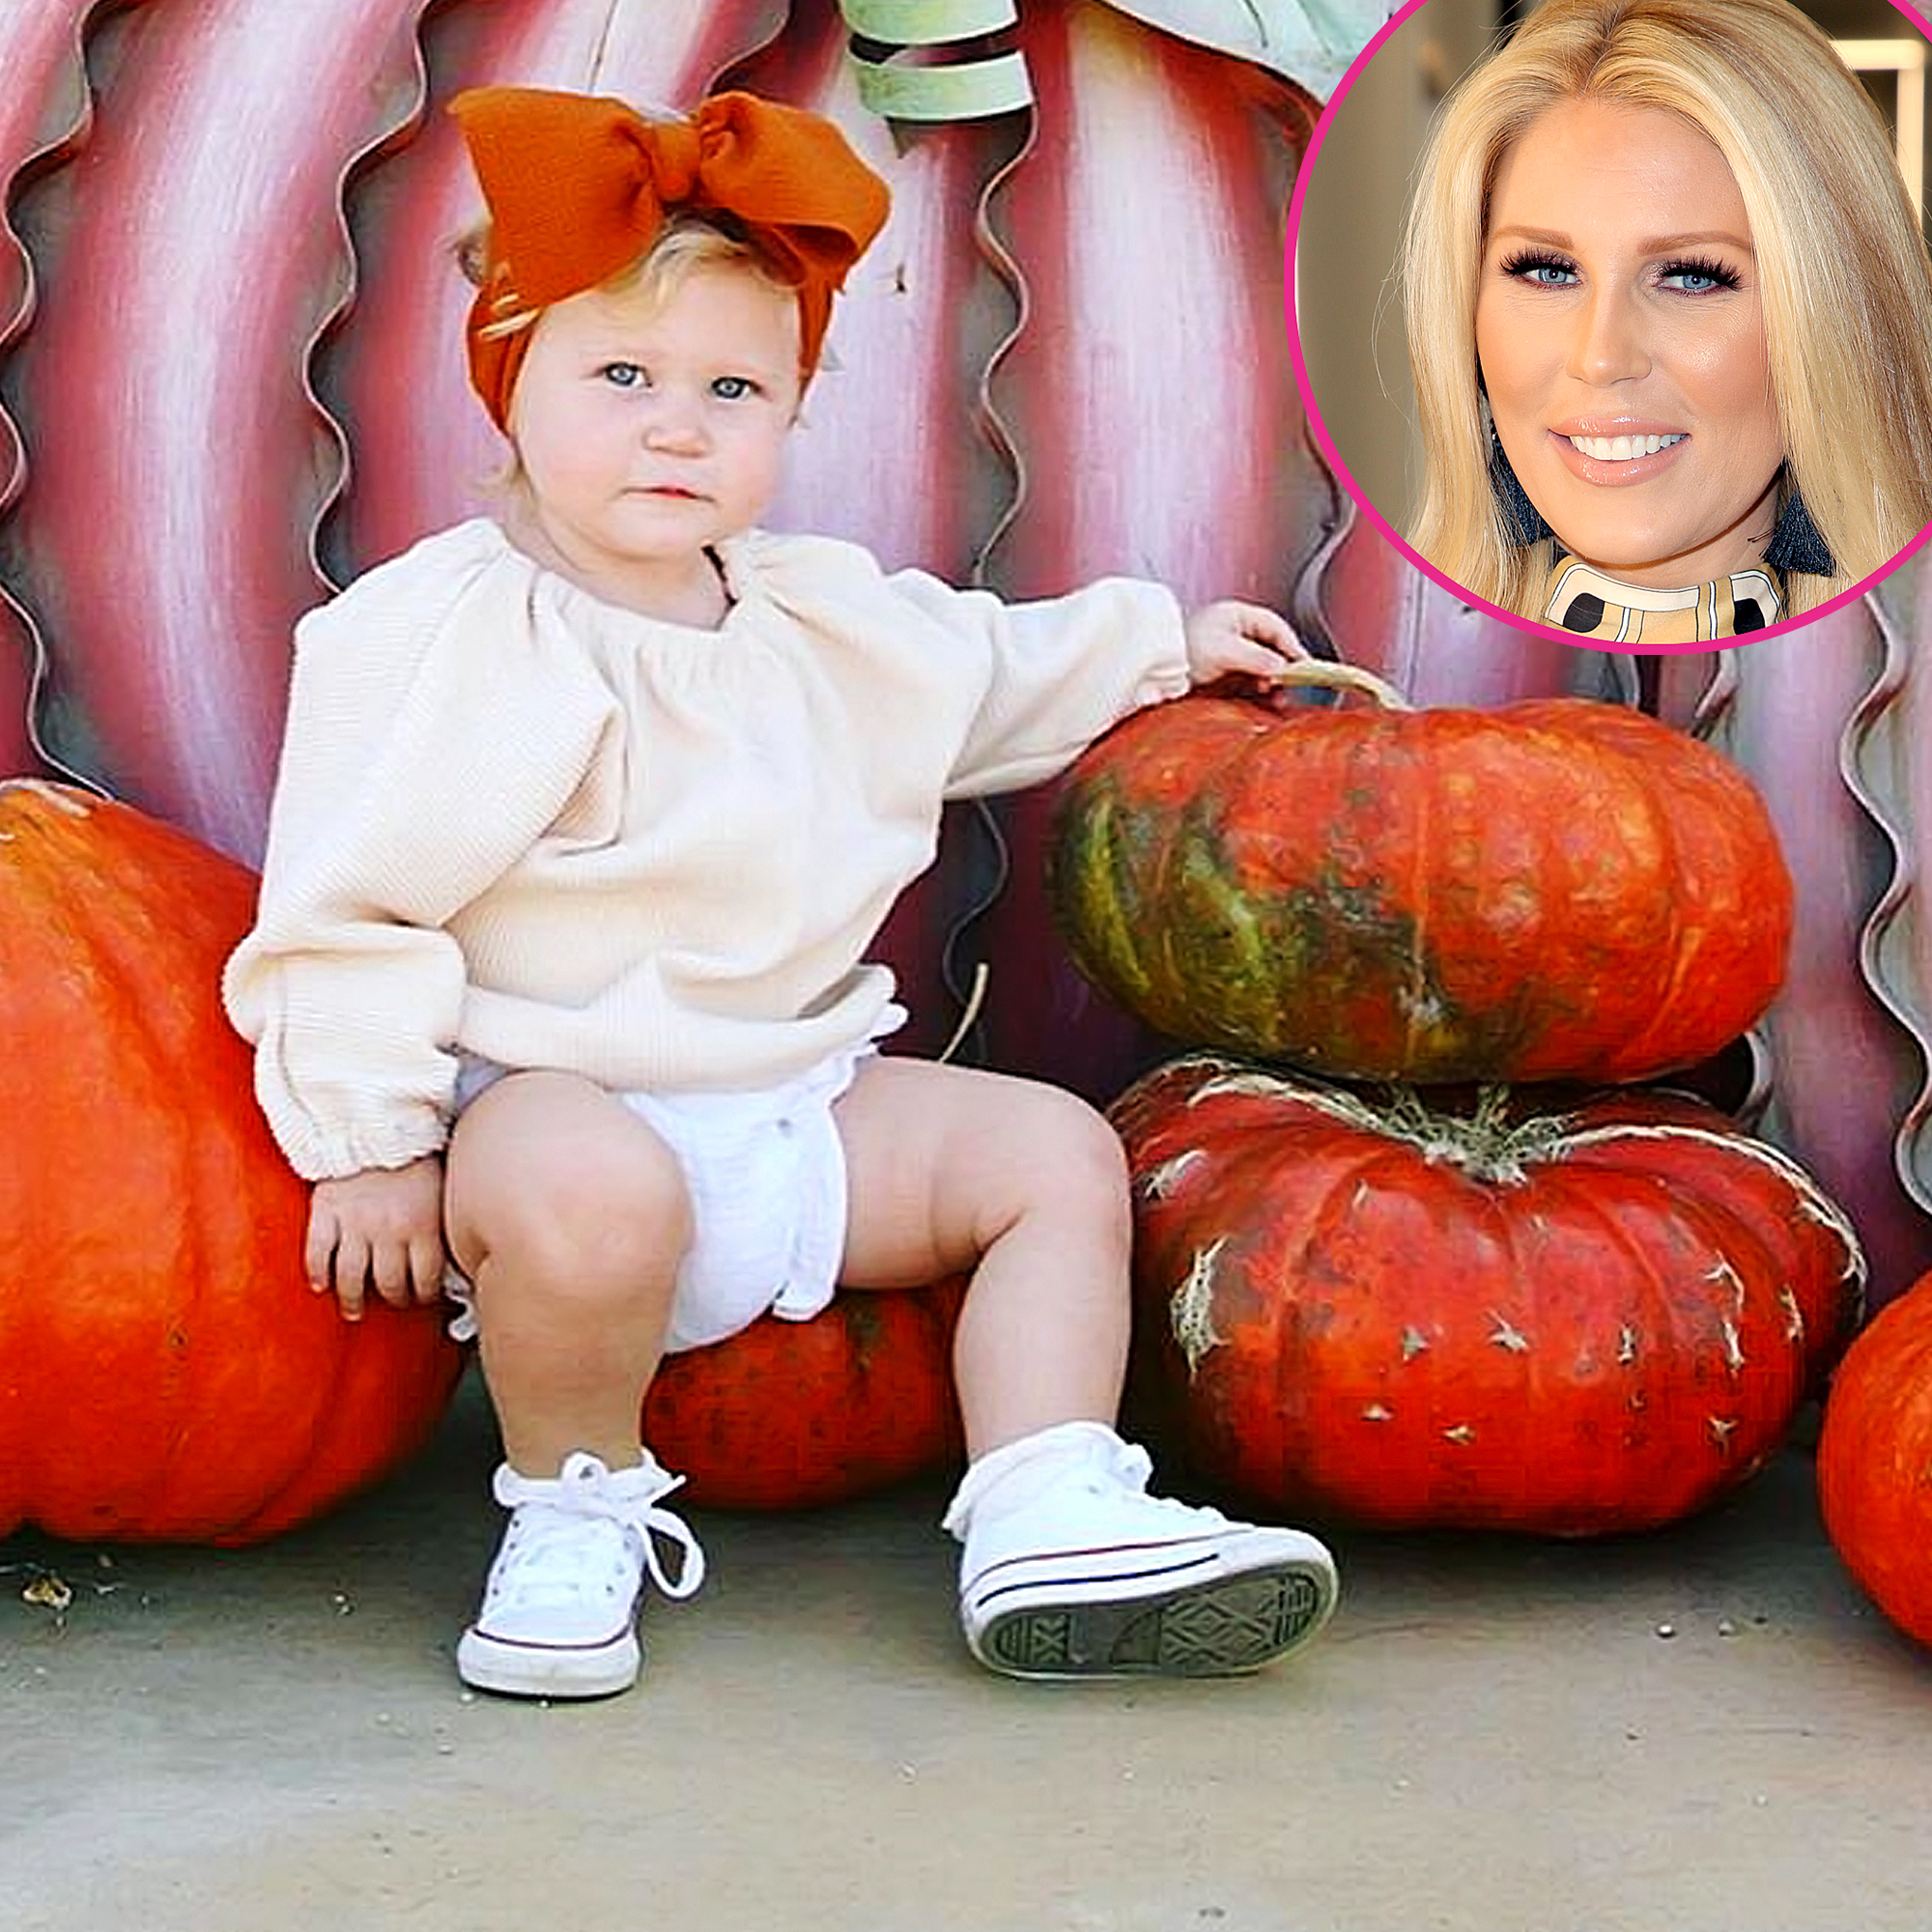 RHOC's Gretchen Rossi and More Parents Visiting Pumpkin Patches With Kids